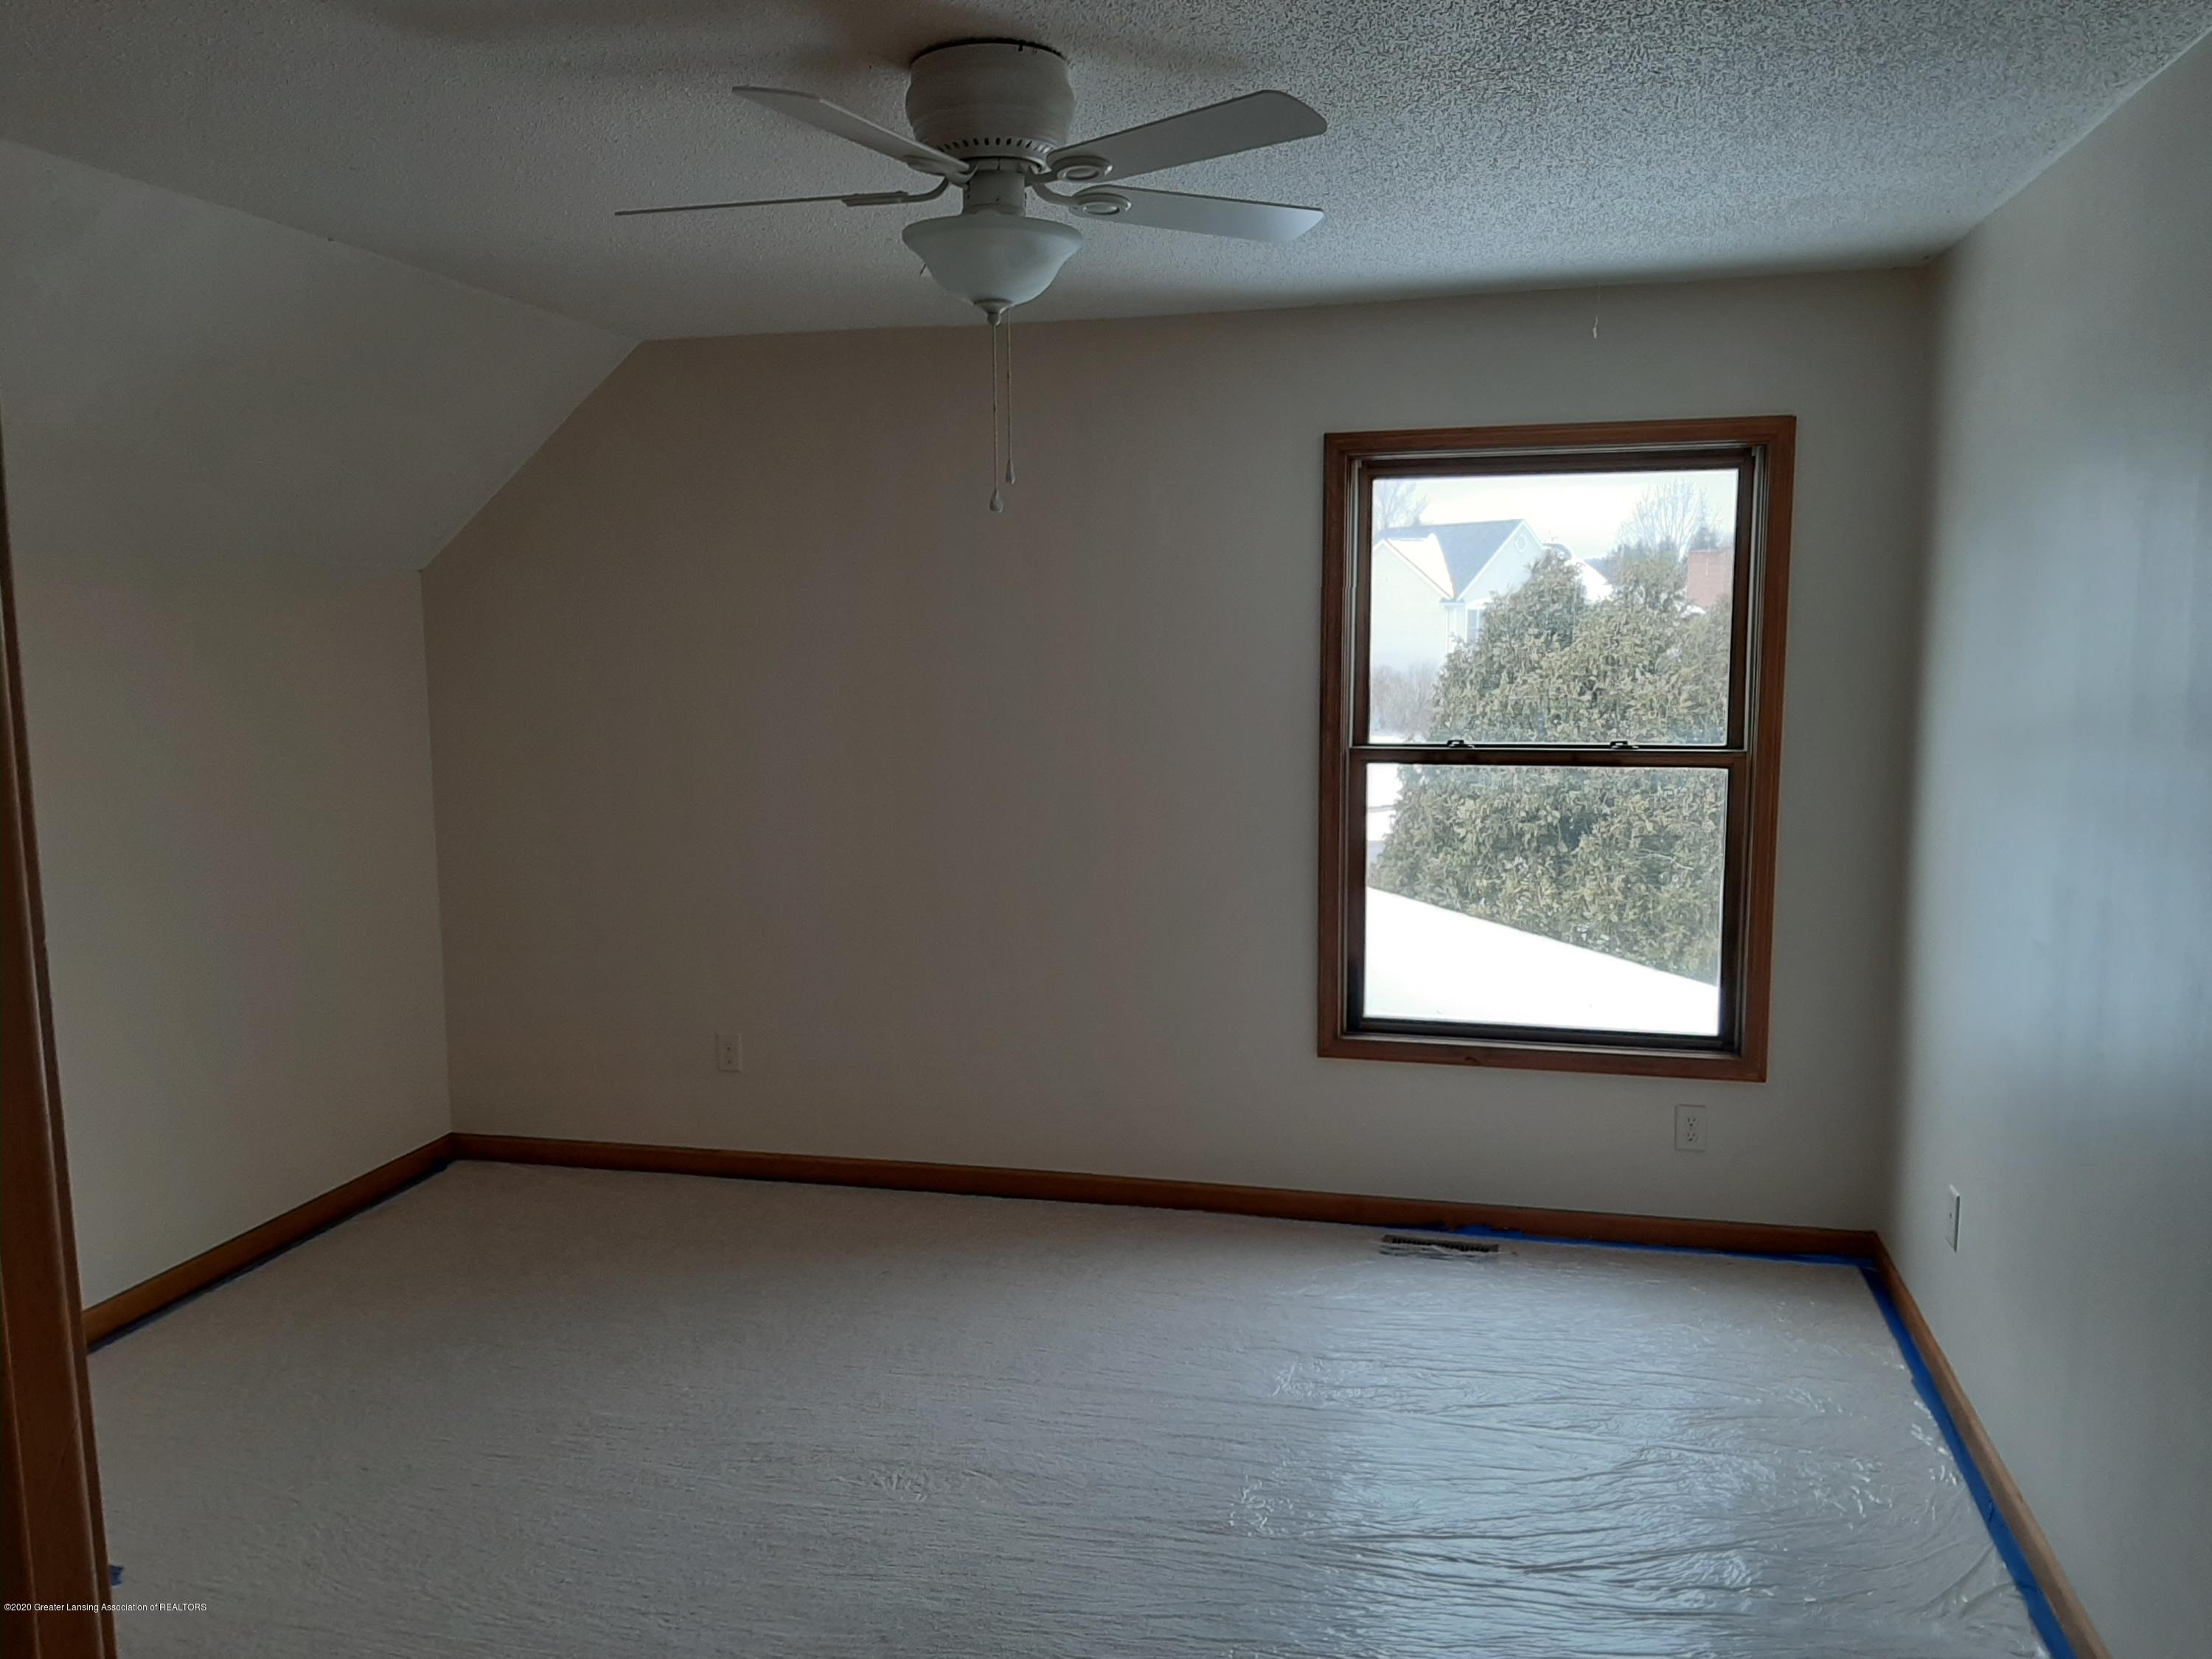 4366 Alderwood Dr - Bedroom - 3